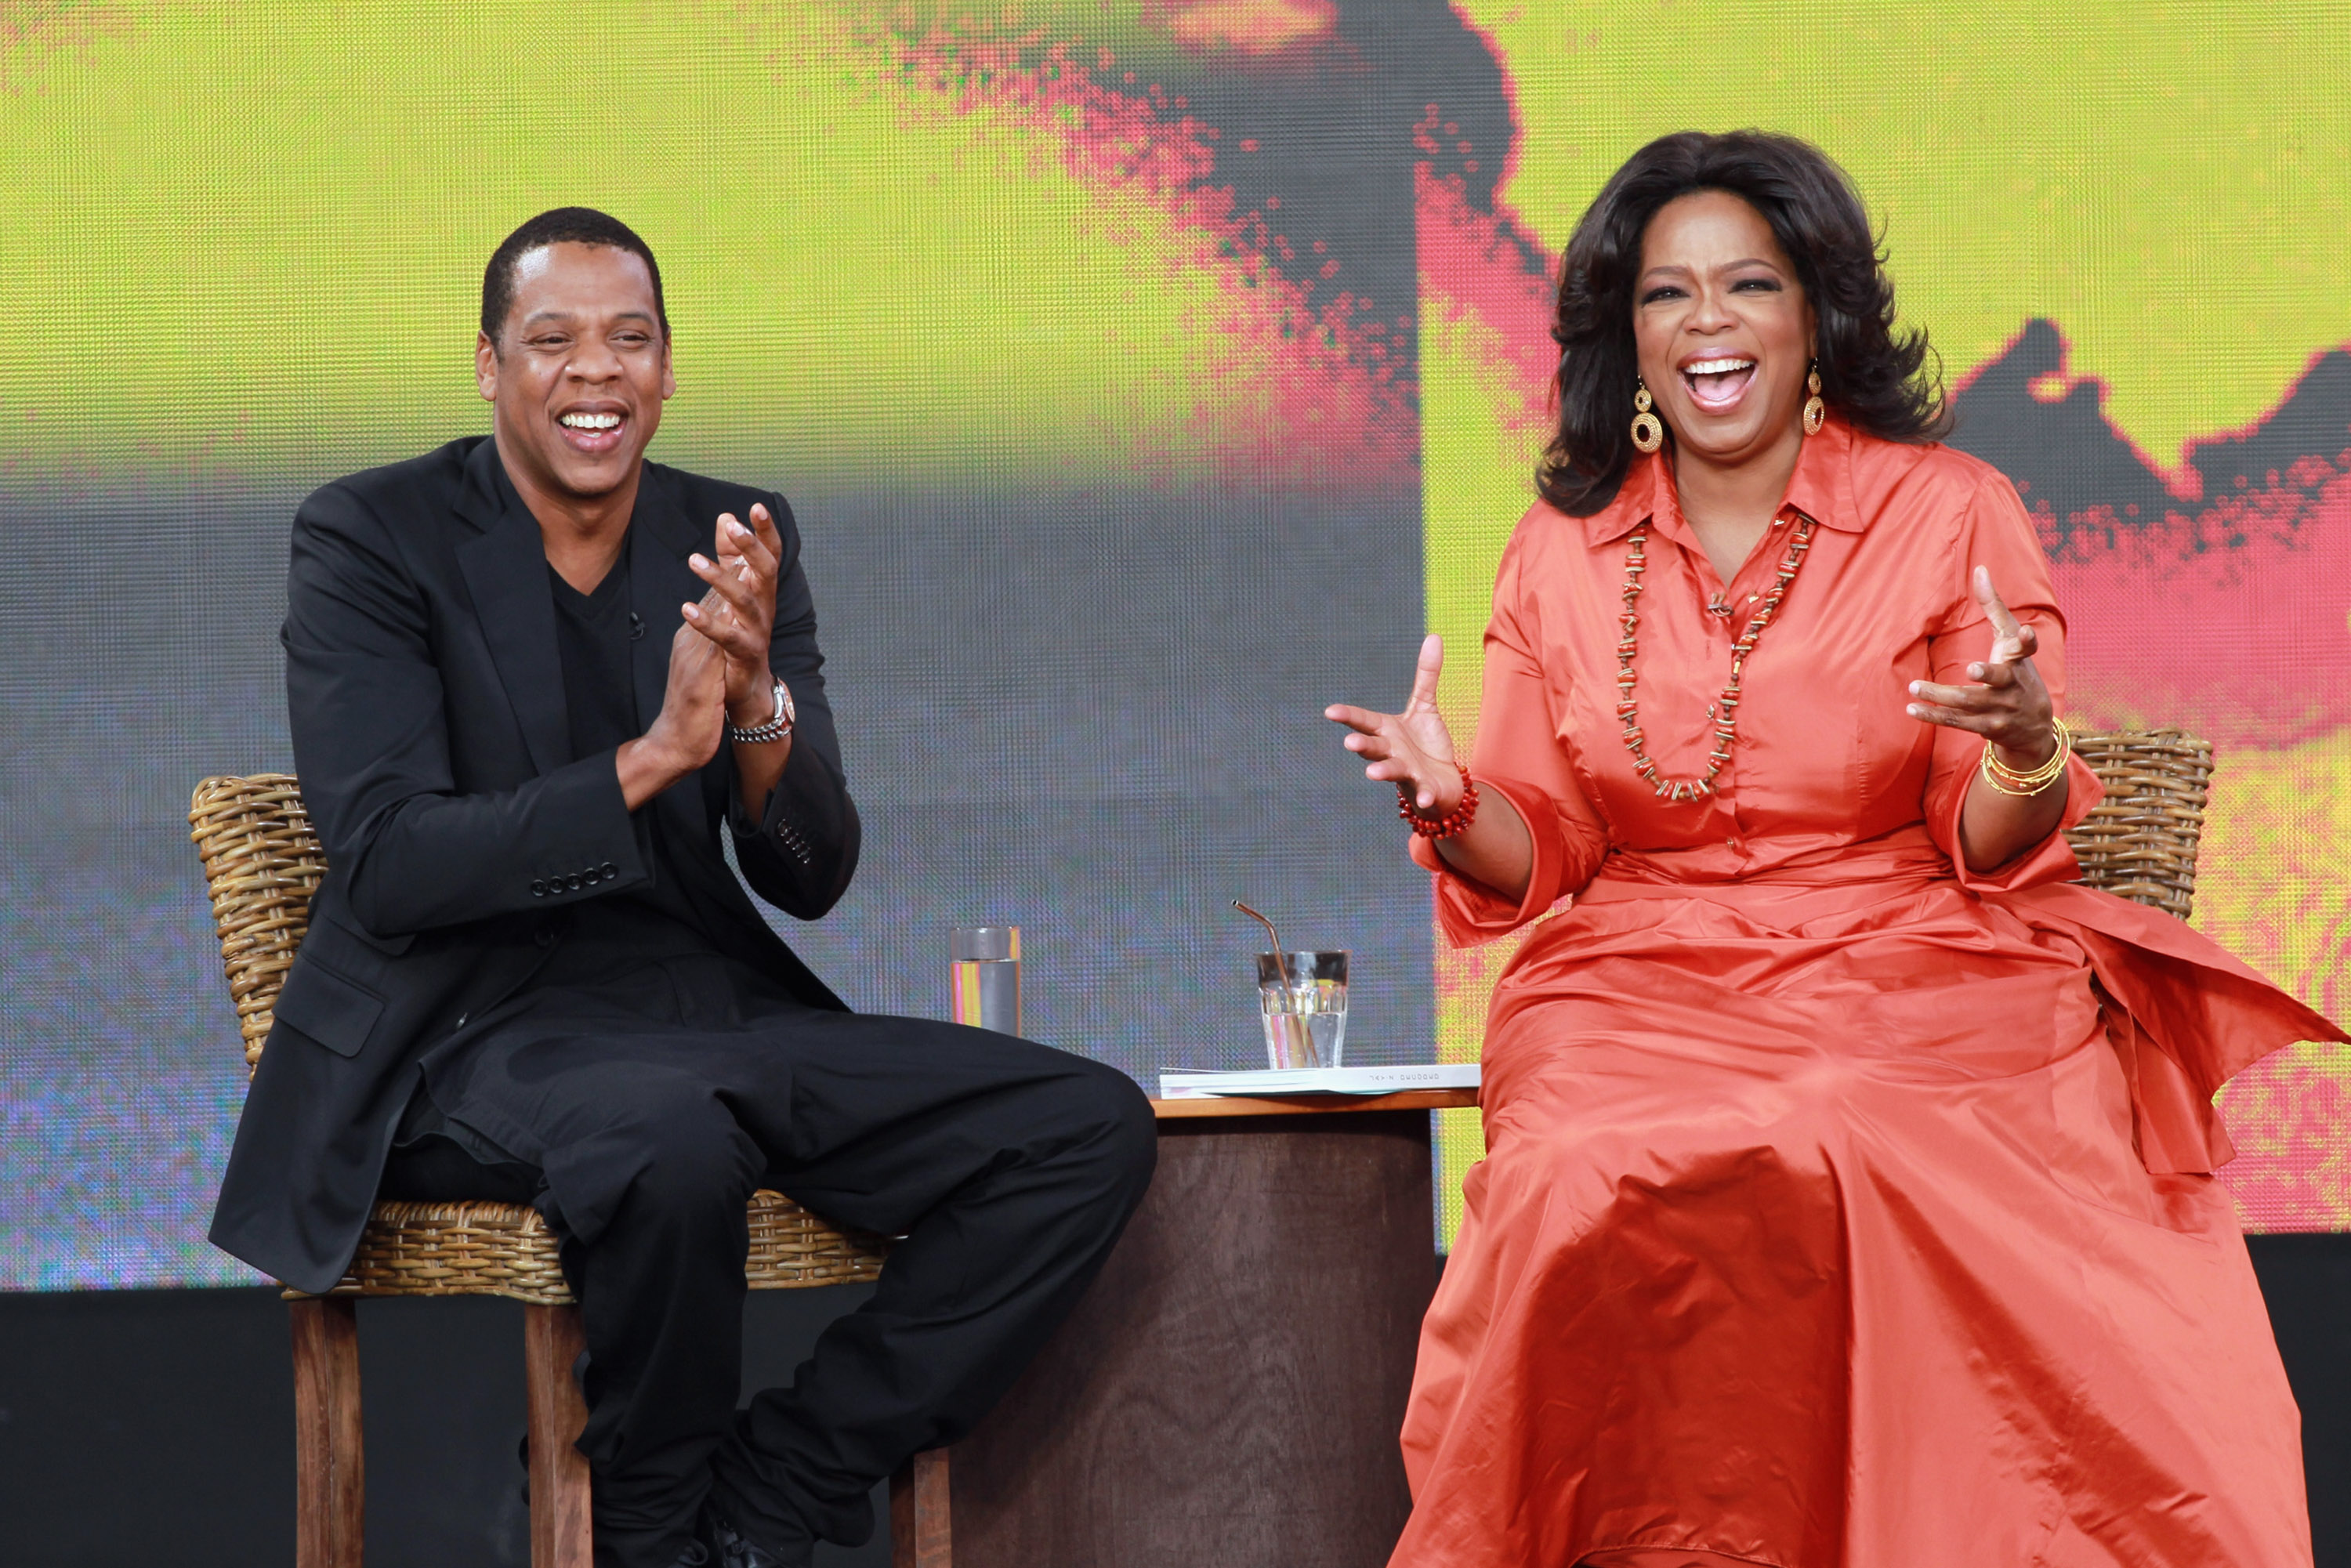 You get to be Jay-Z, we get to be Oprah. #winwin